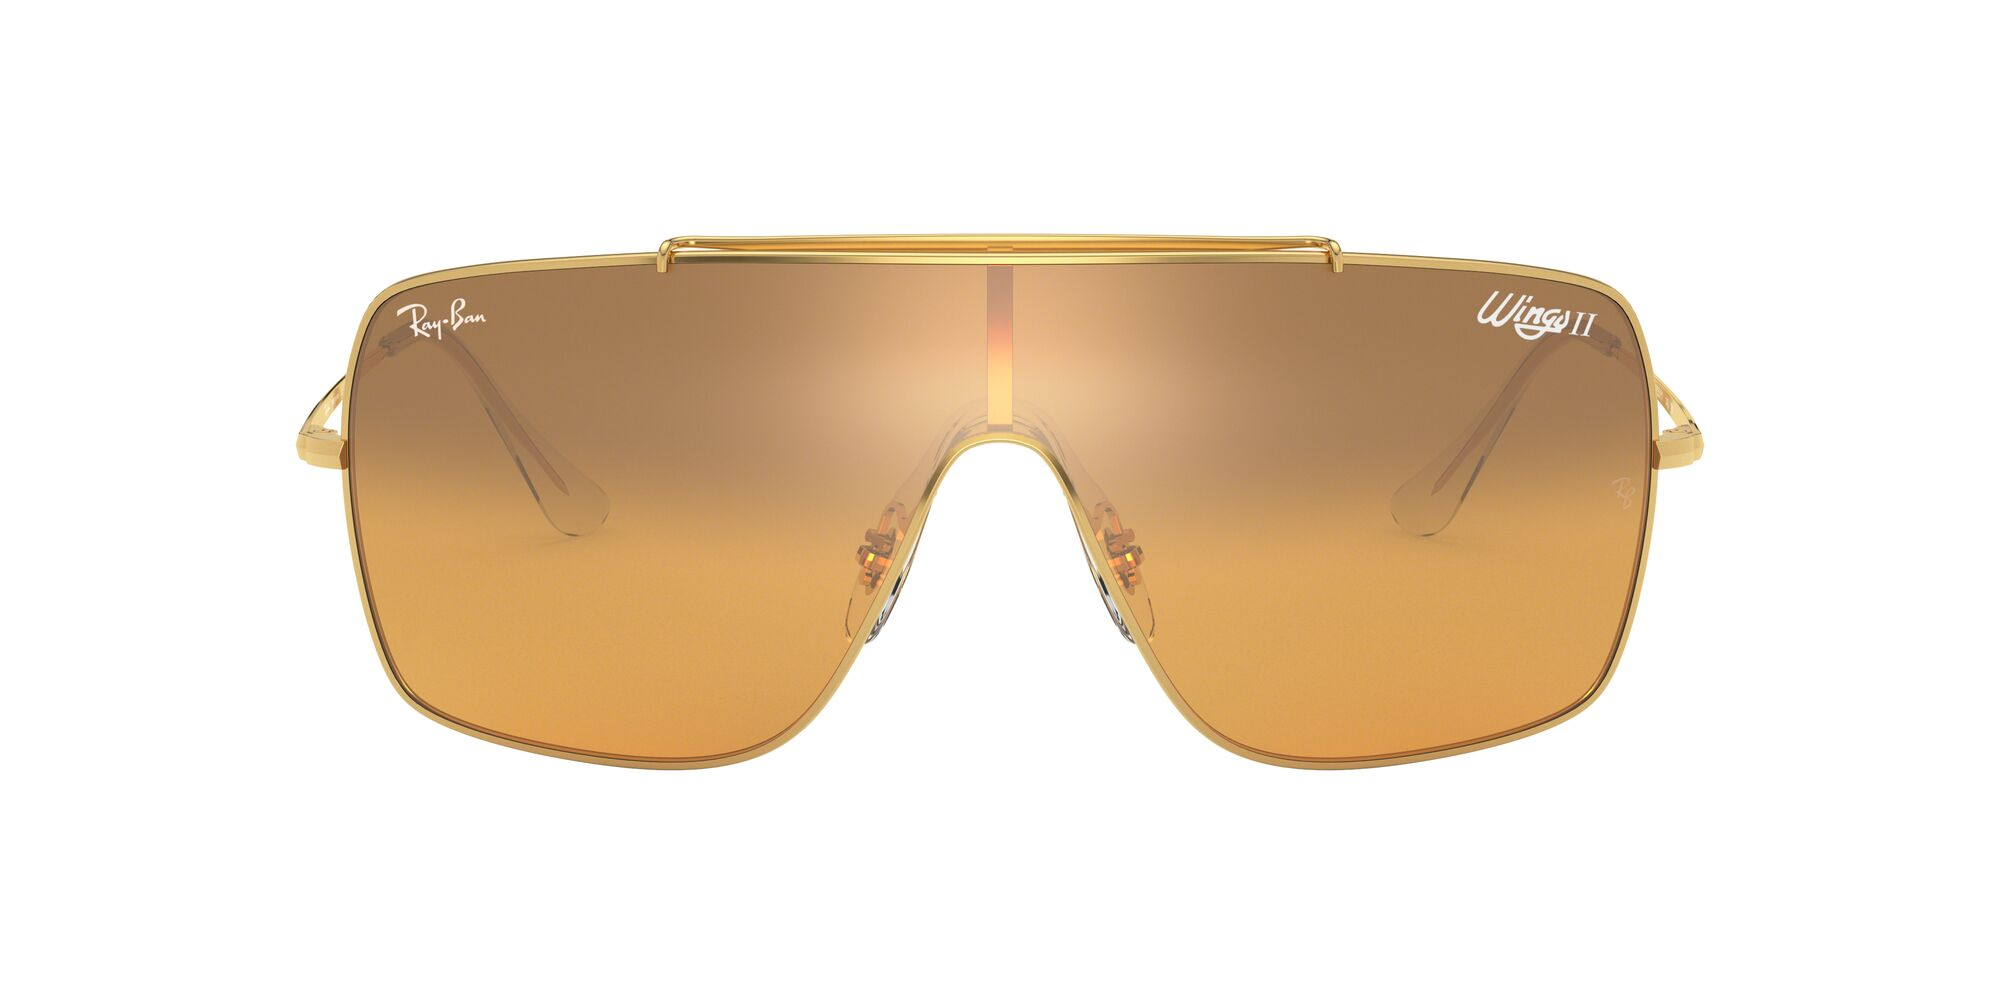 Front Ray-Ban Ray-Ban 0RB3697 9050Y1 99/0 Goud/Oranje